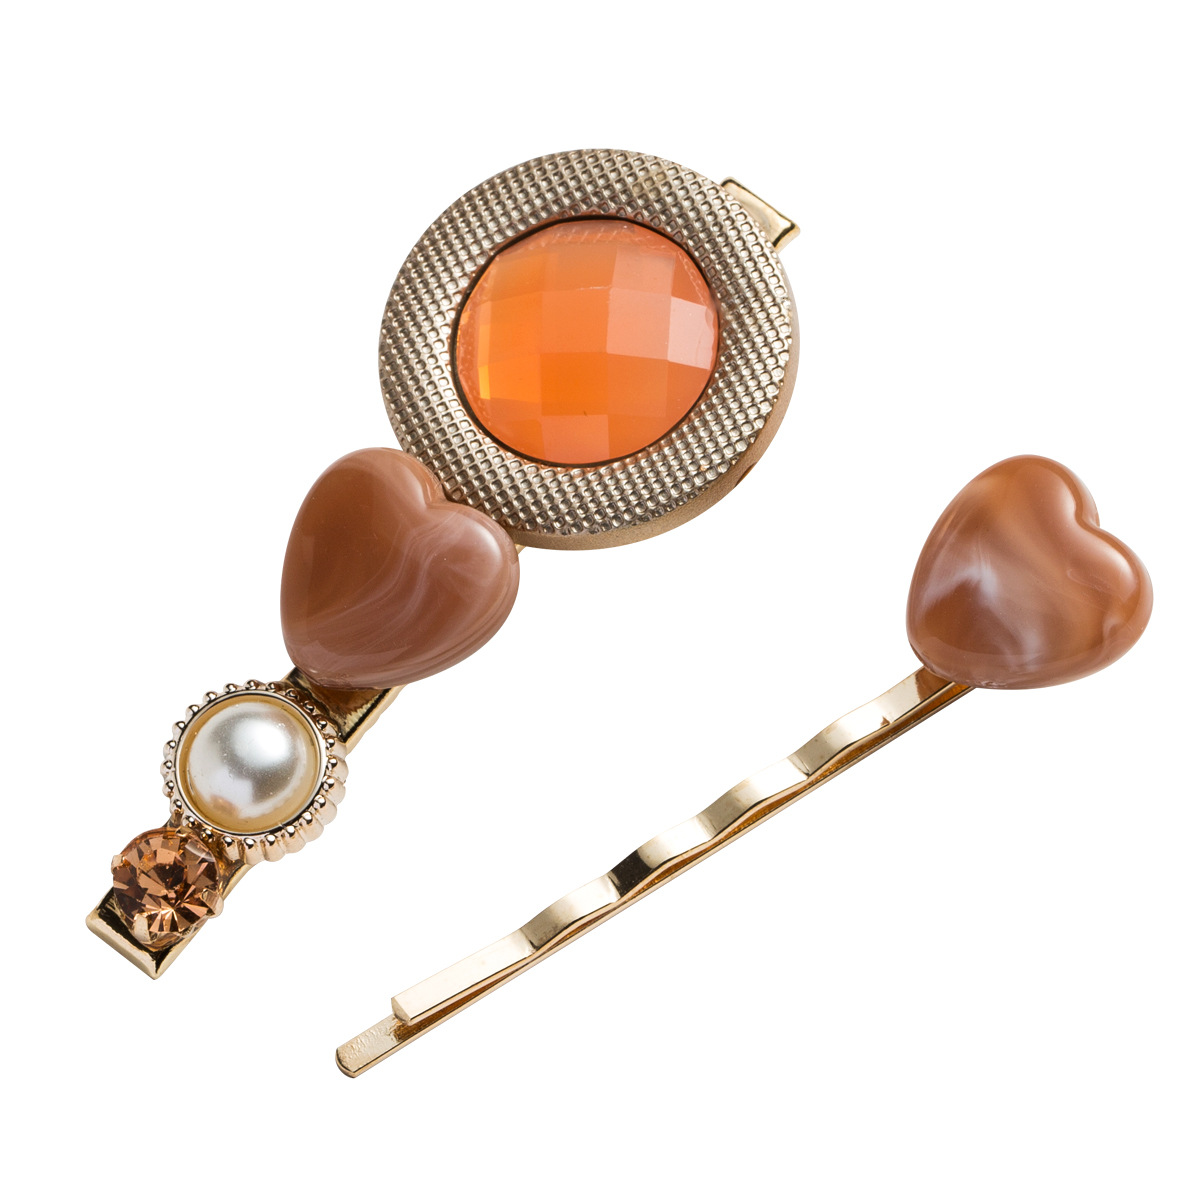 WENZHE Korean Style Acrylic Acetate Pearl Heart Hairpin Duckbill Clip Set Featured Image